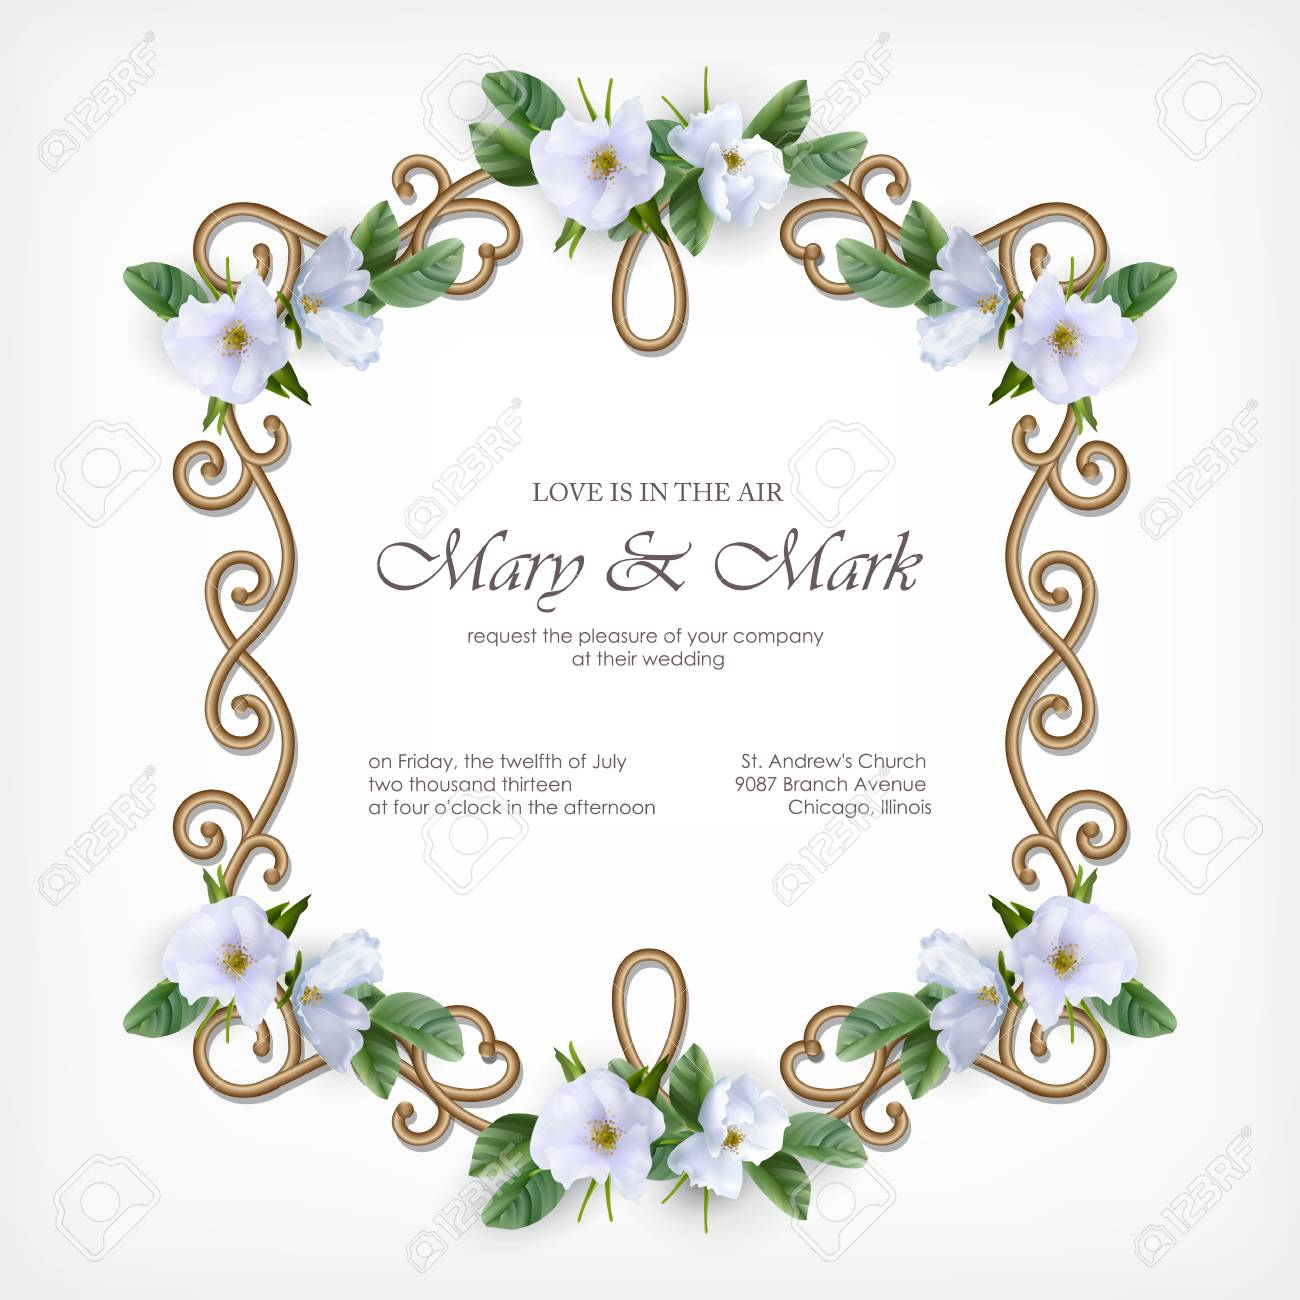 Wedding Invitation Card With Decorative Golden Frame And White ...